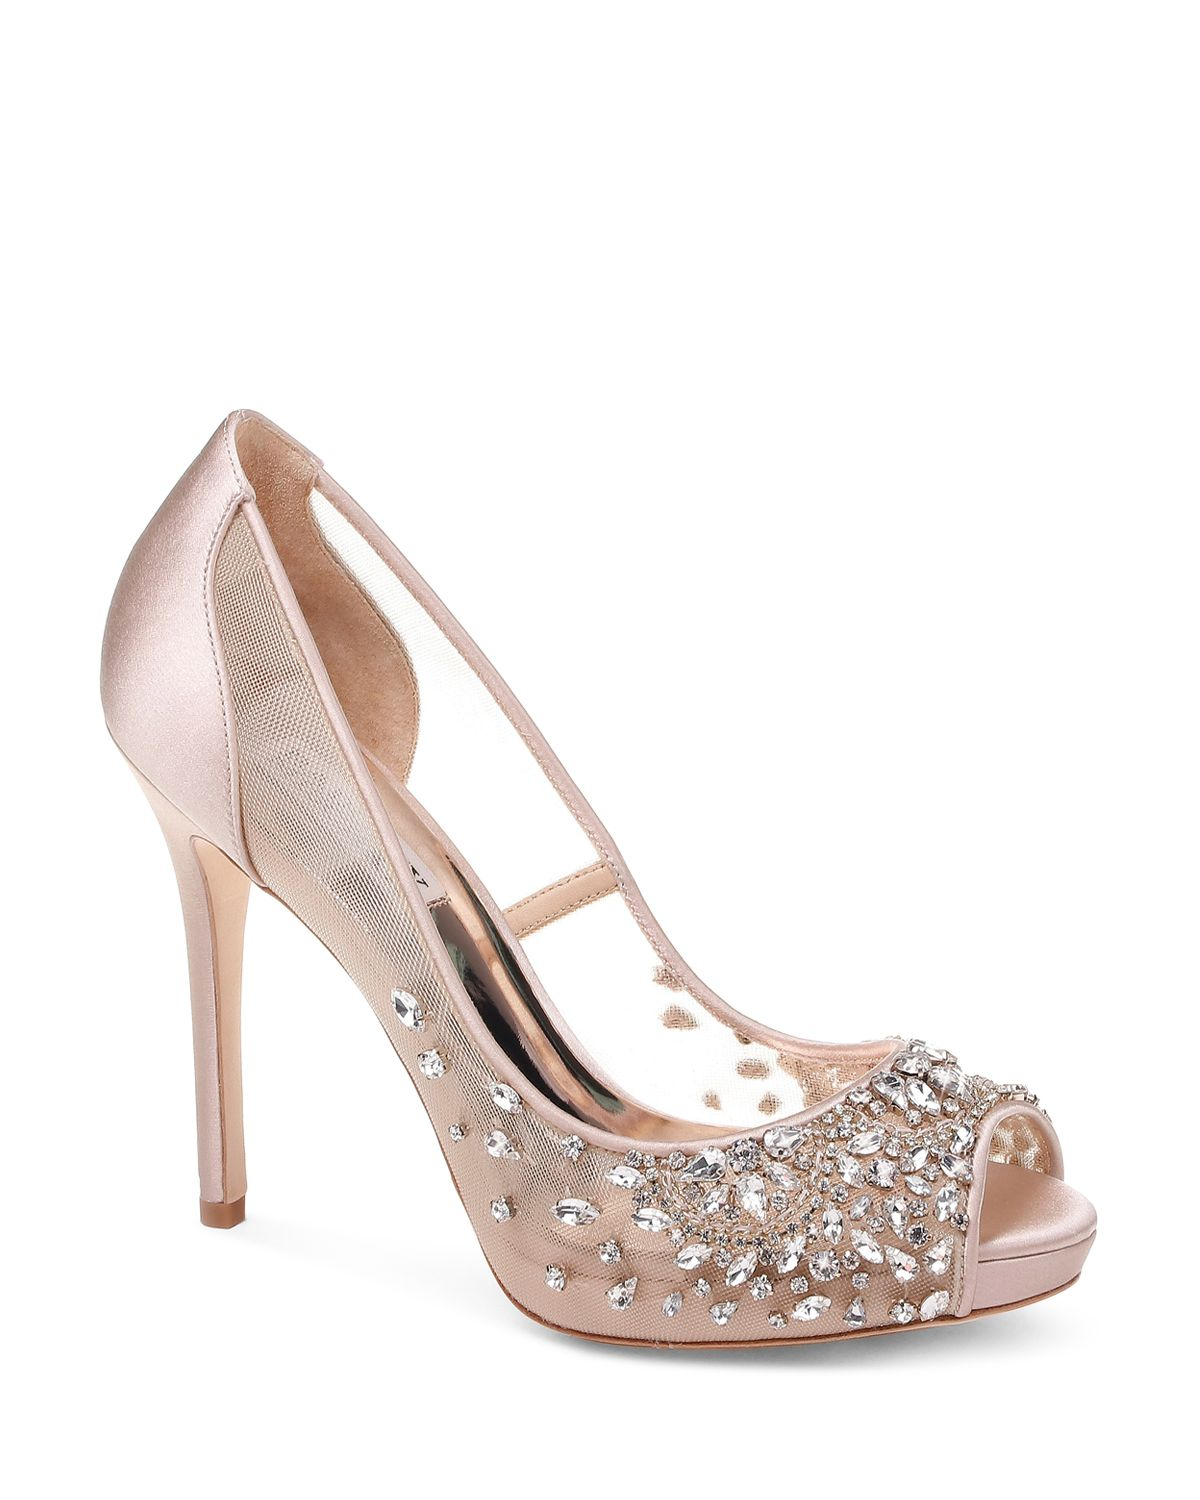 Badgley Mischka Women's Pepper Embellished Mesh & Leather Peep Toe Pumps